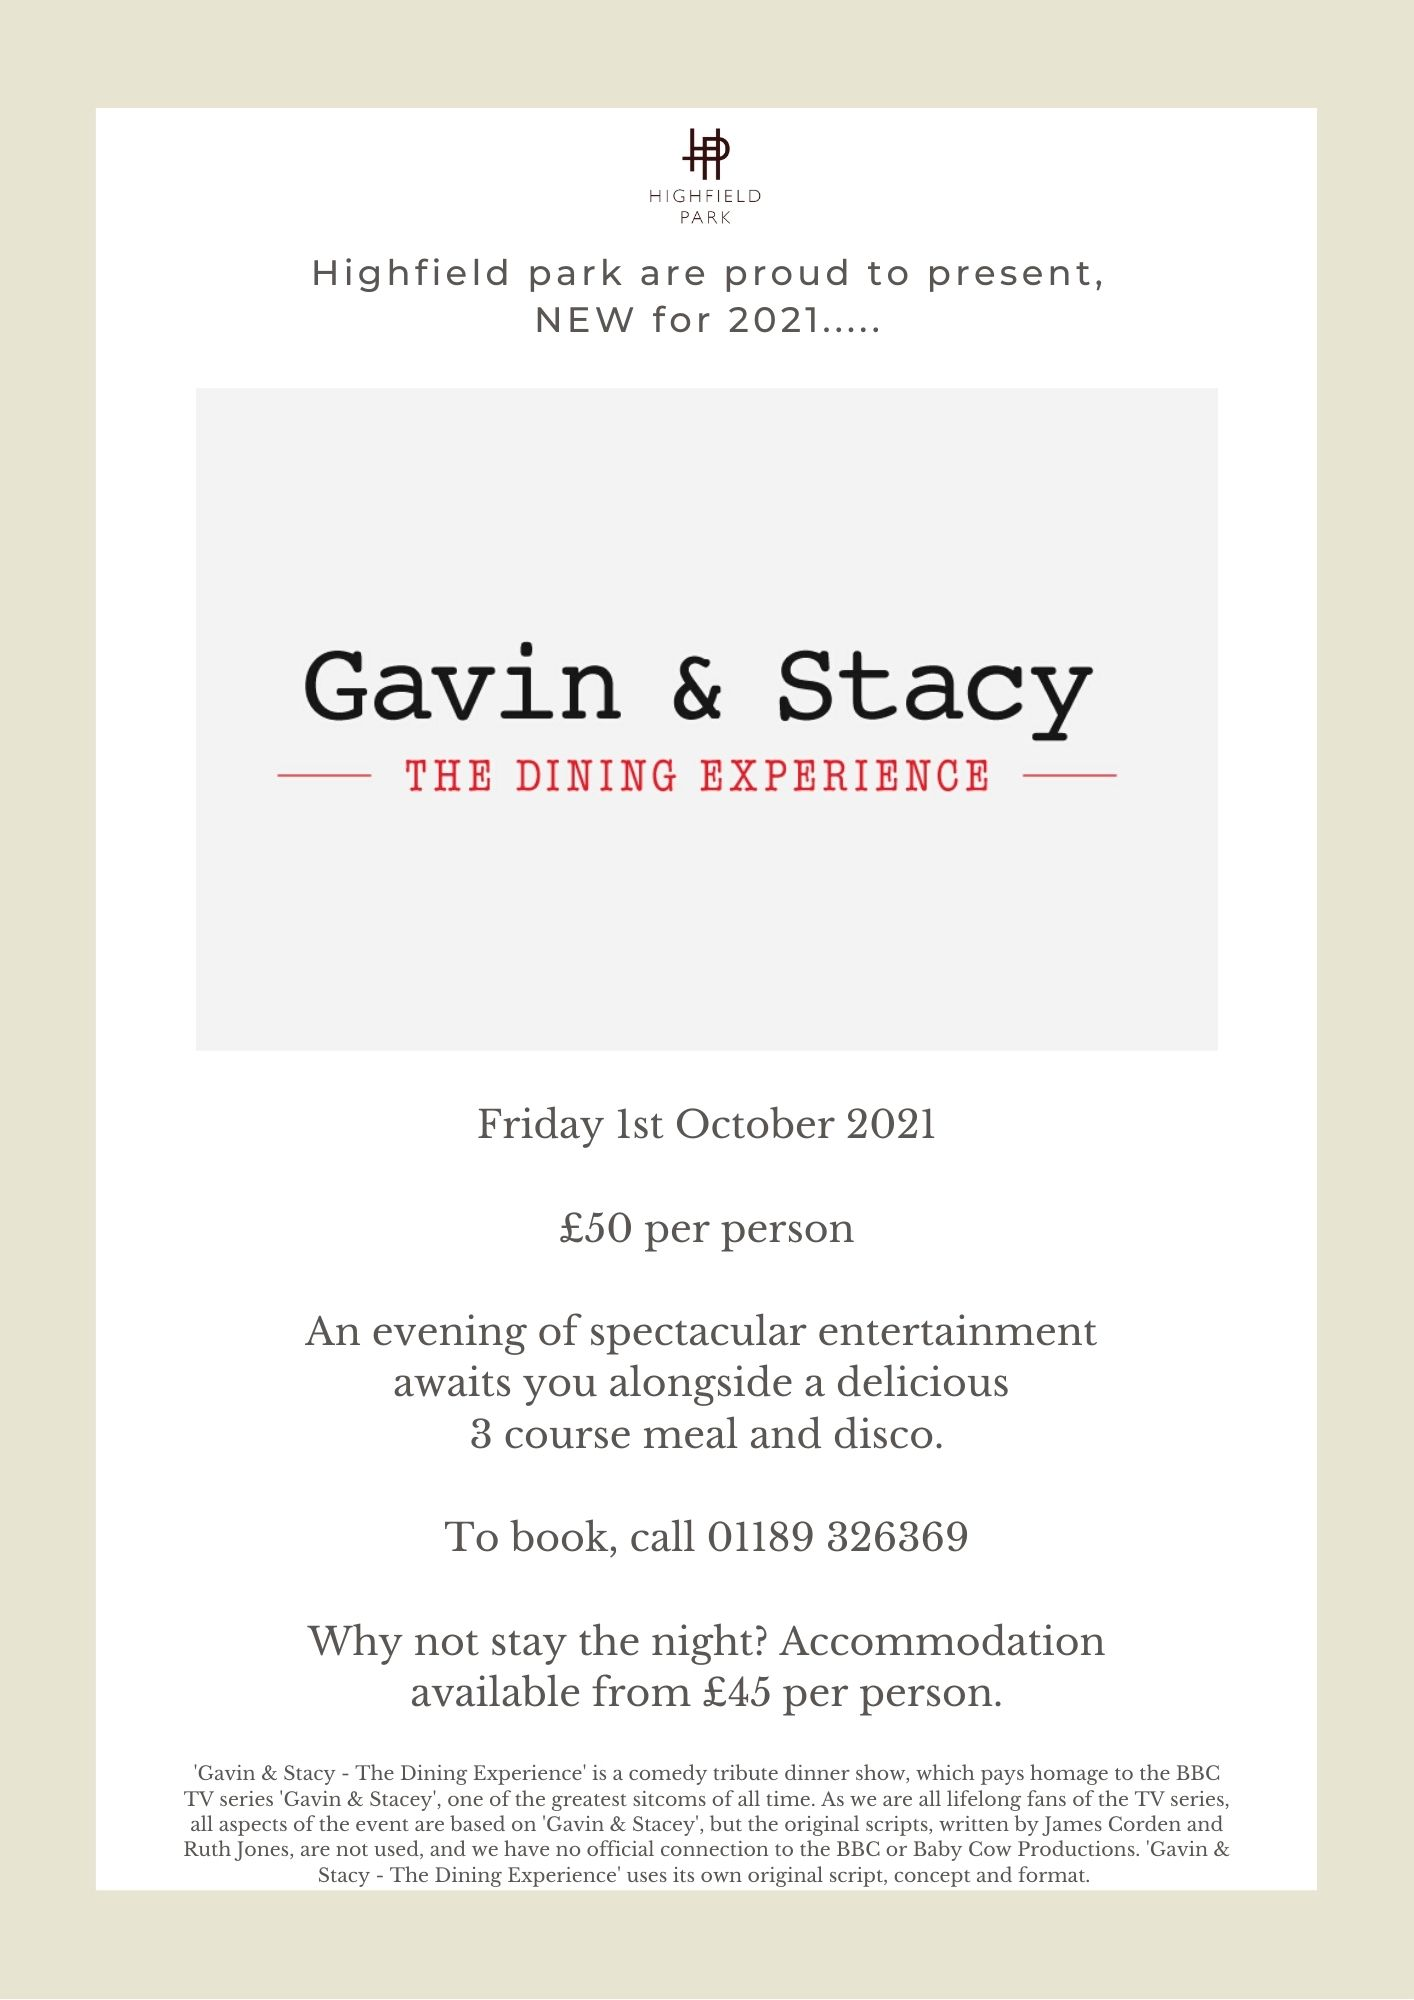 'Gavin & Stacy - The Dining Experience'